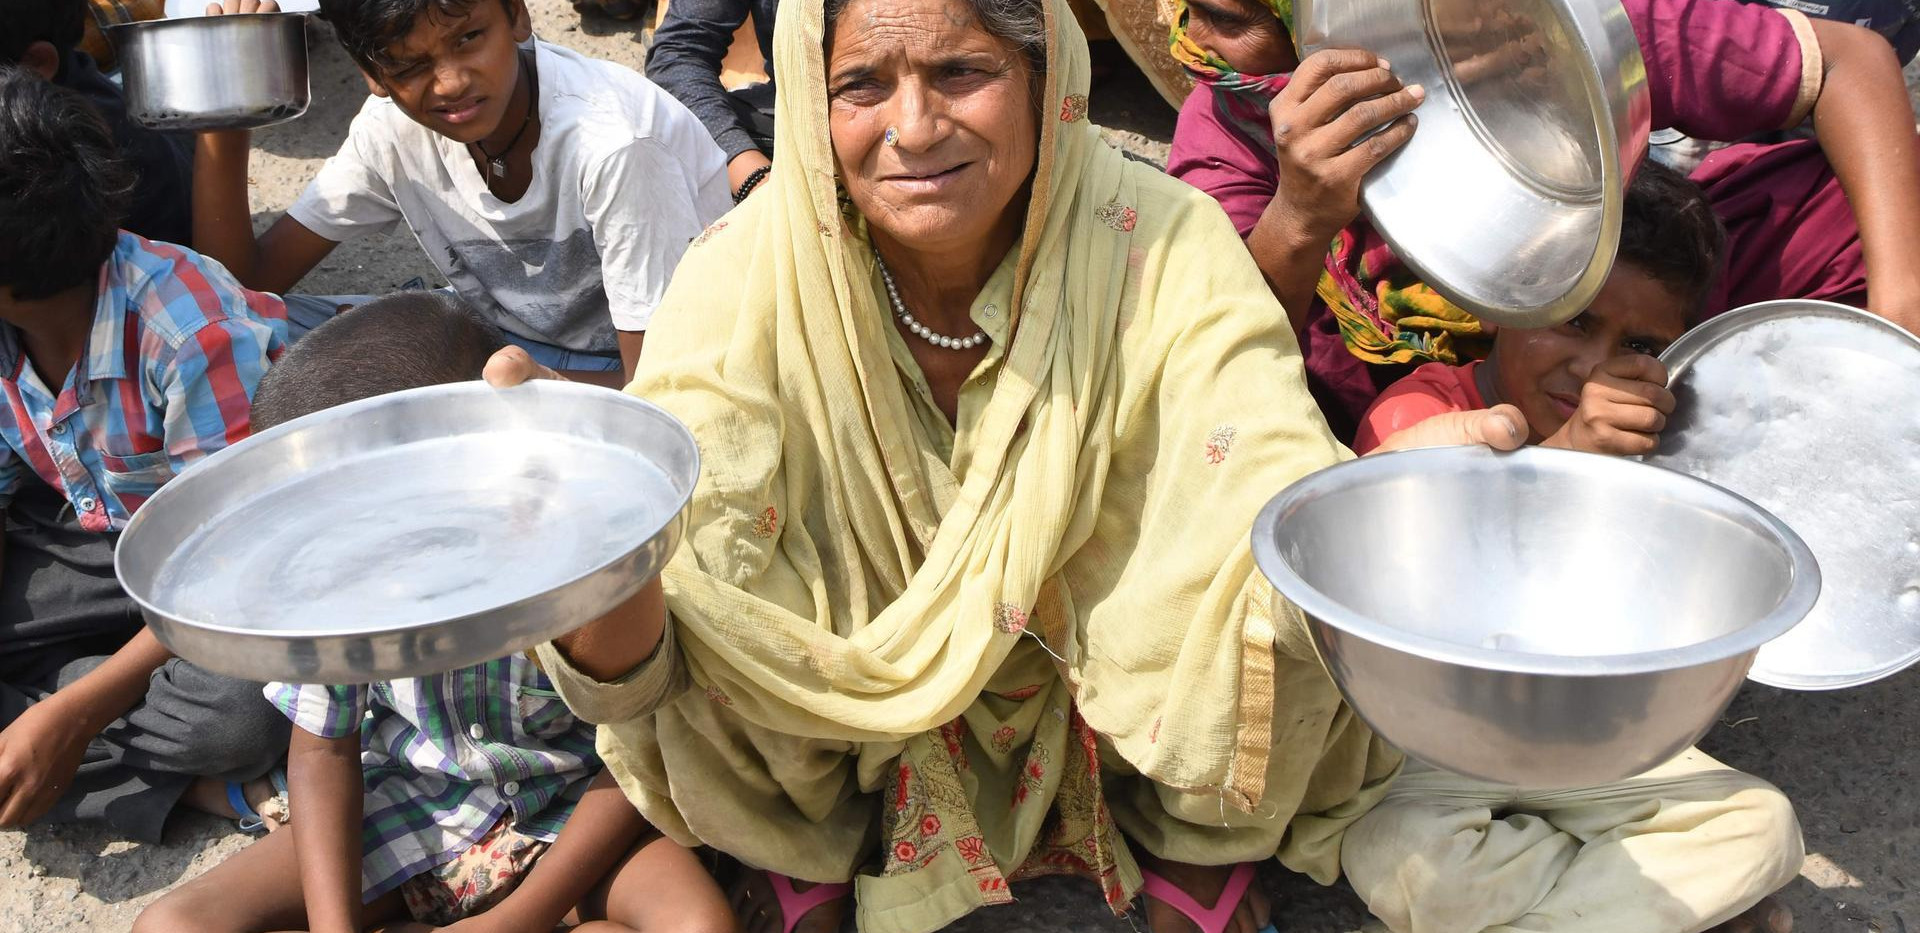 Families from Maharashtra hold out utensils to protest the lack of food in a slum area on the outskirts of Amritsar, Punjab, May 31. Narinder Nanu / AFP